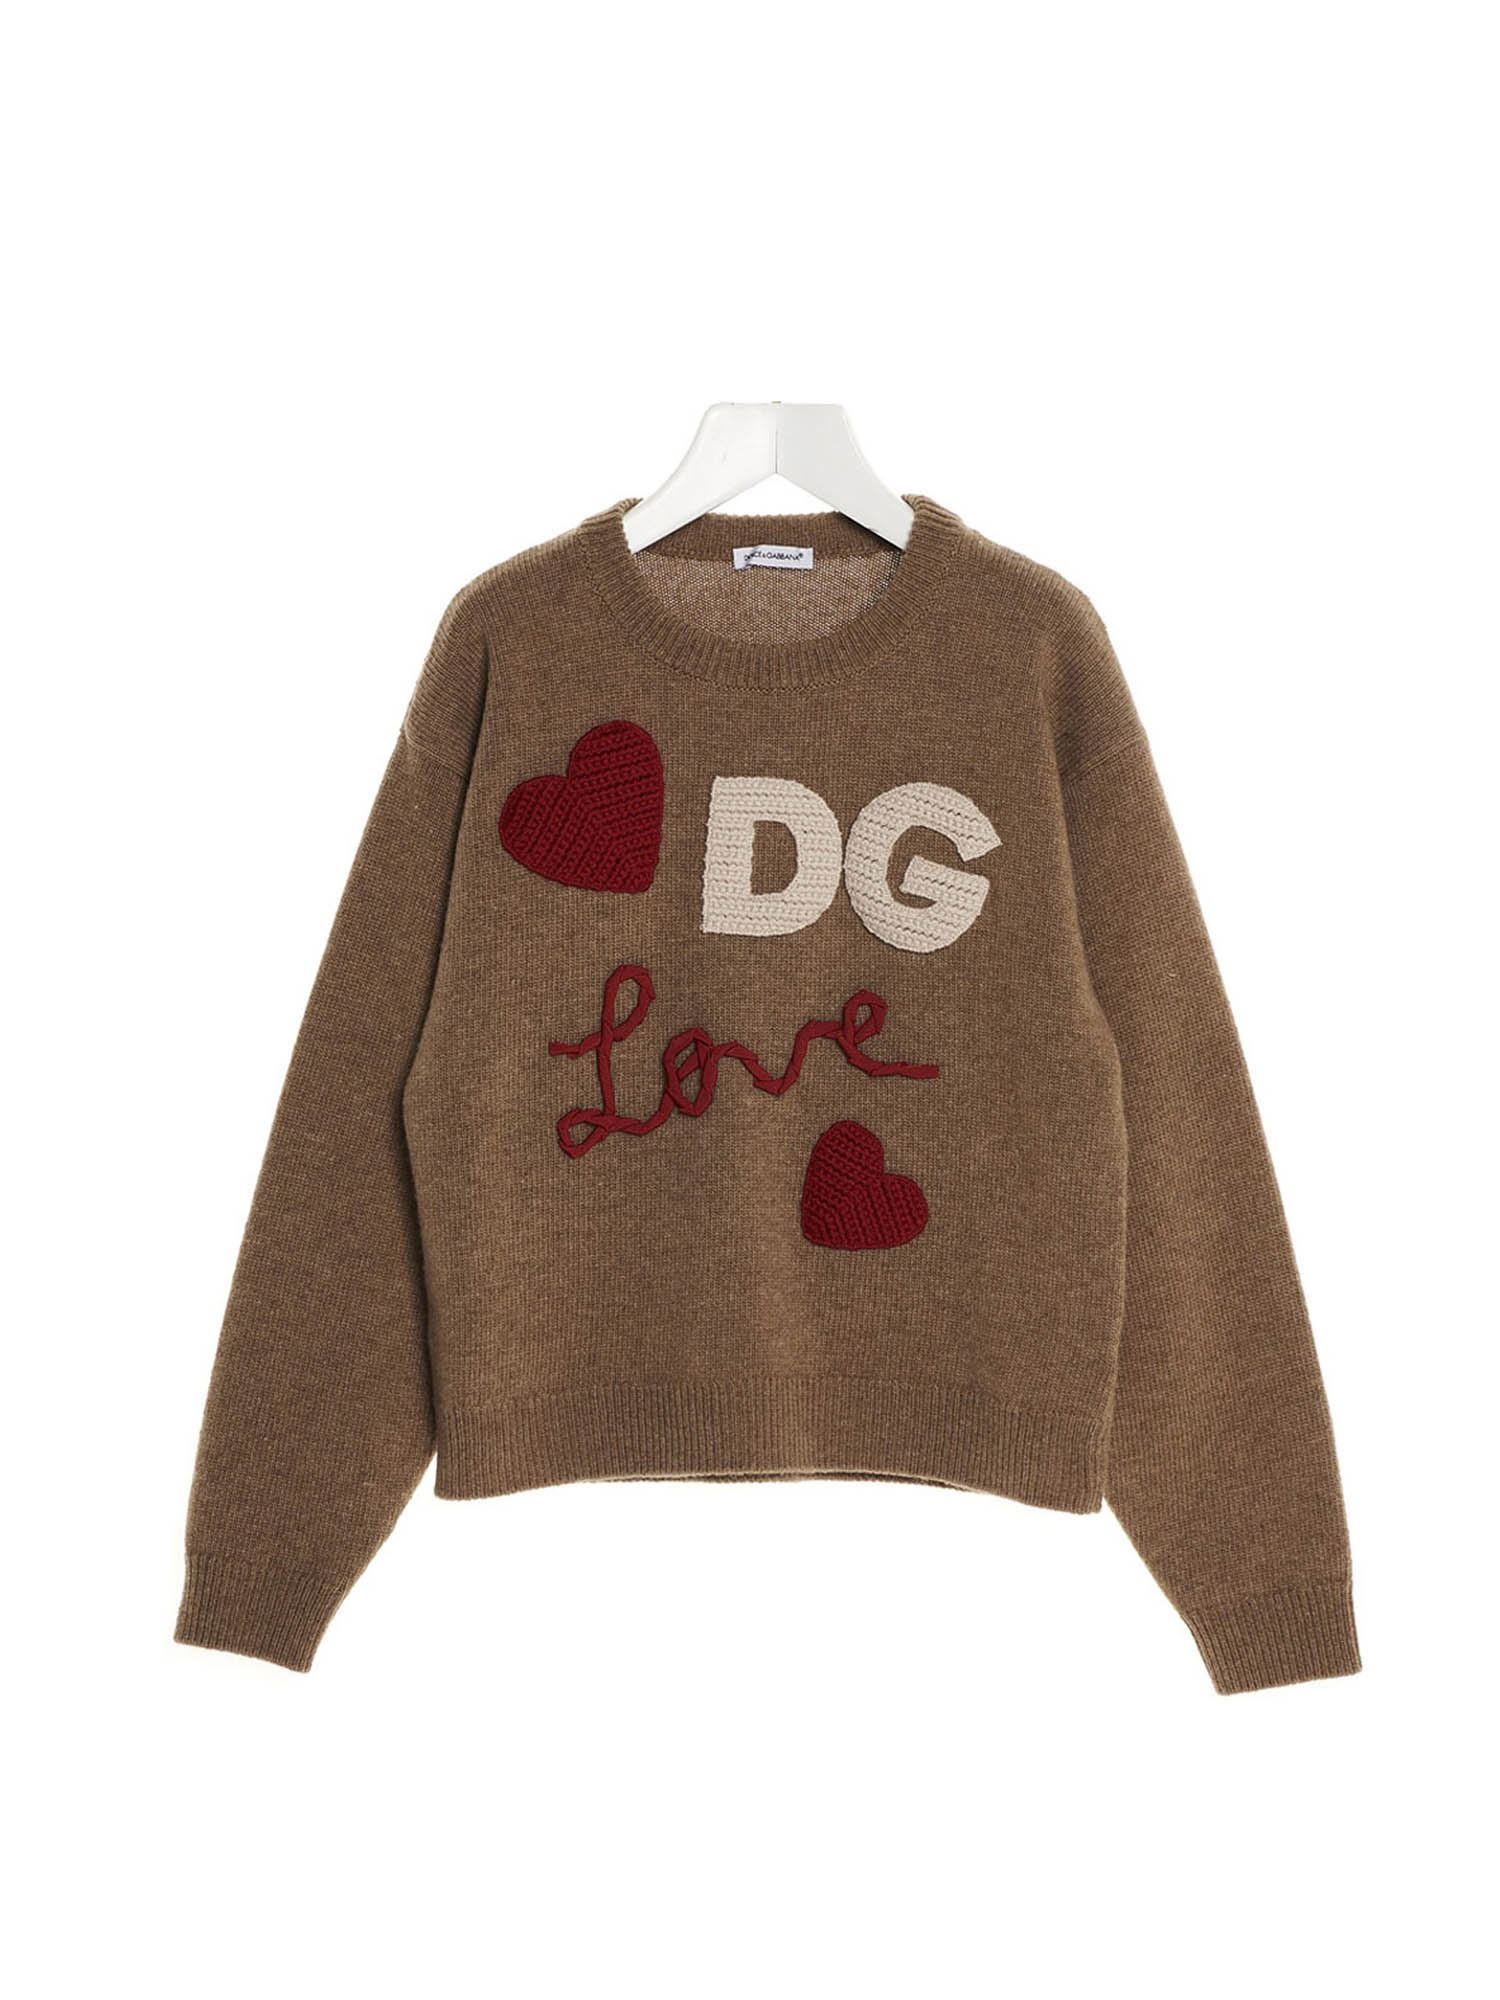 Dolce & Gabbana Jr DG LOVE PATCH PULLOVER IN BROWN